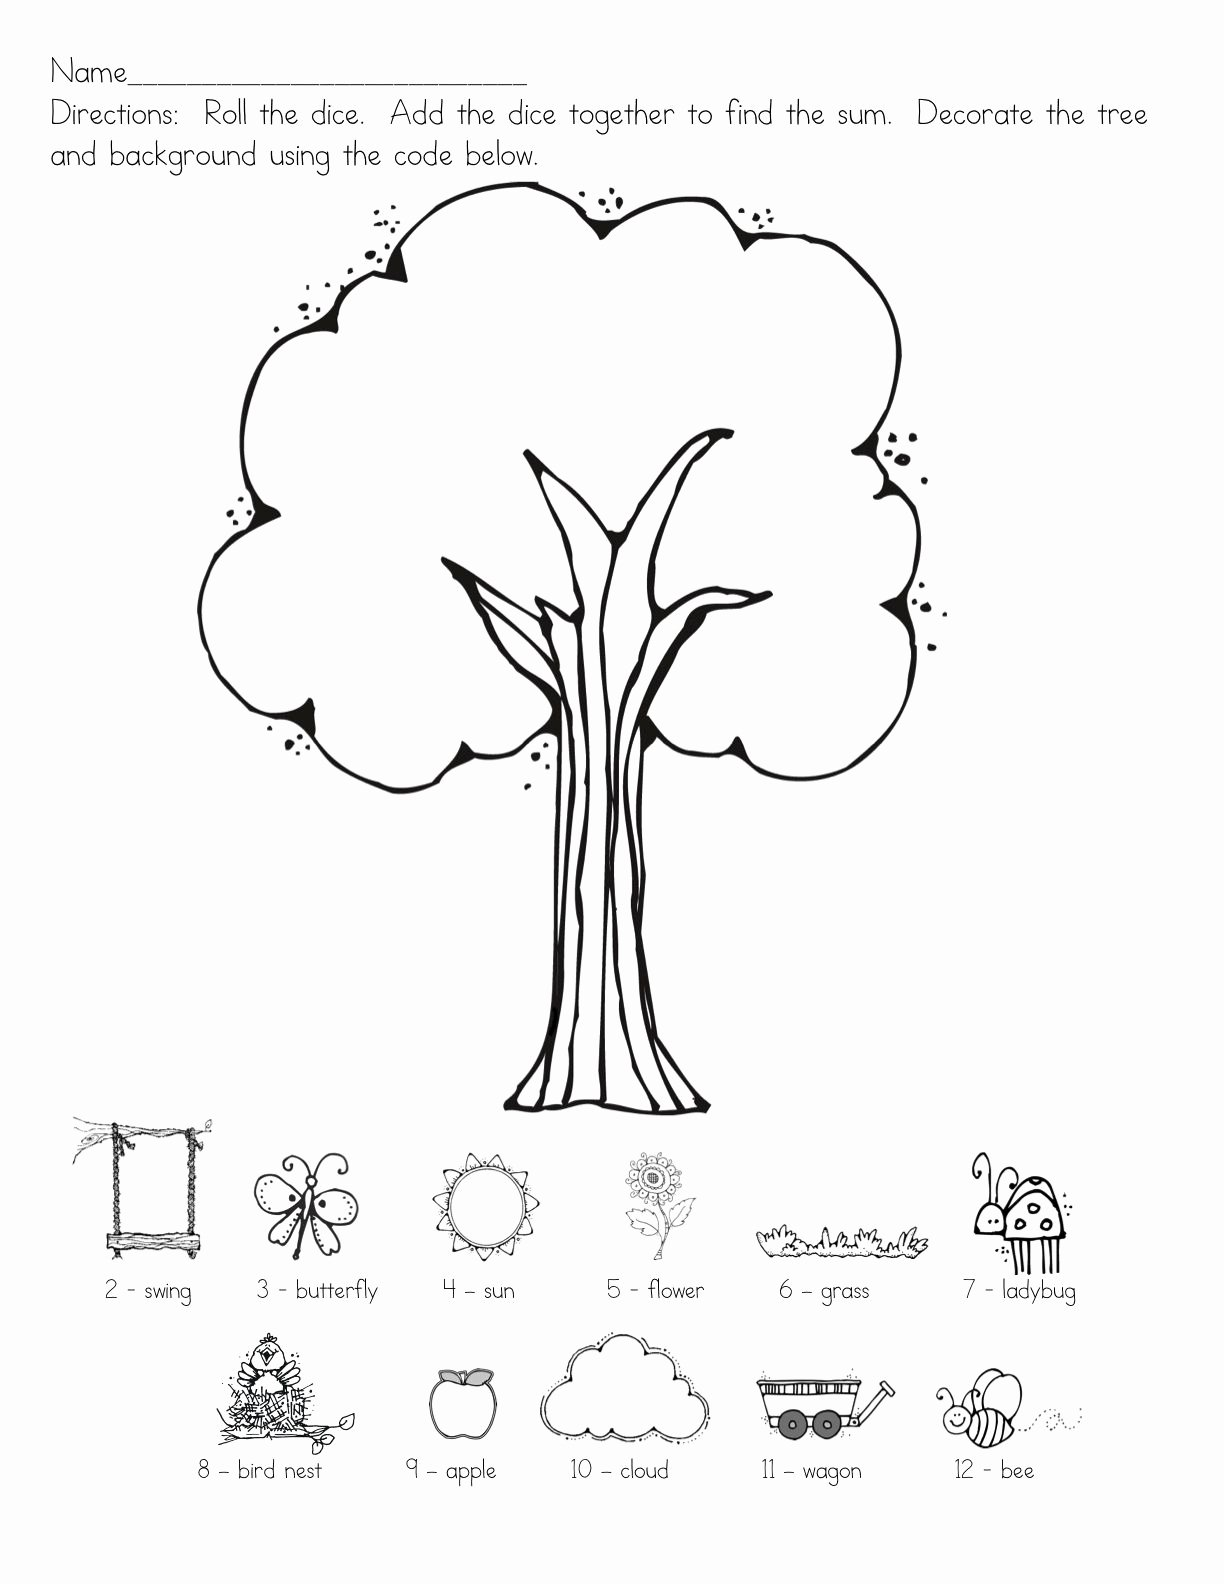 Spatial Concepts Worksheets For Preschoolers